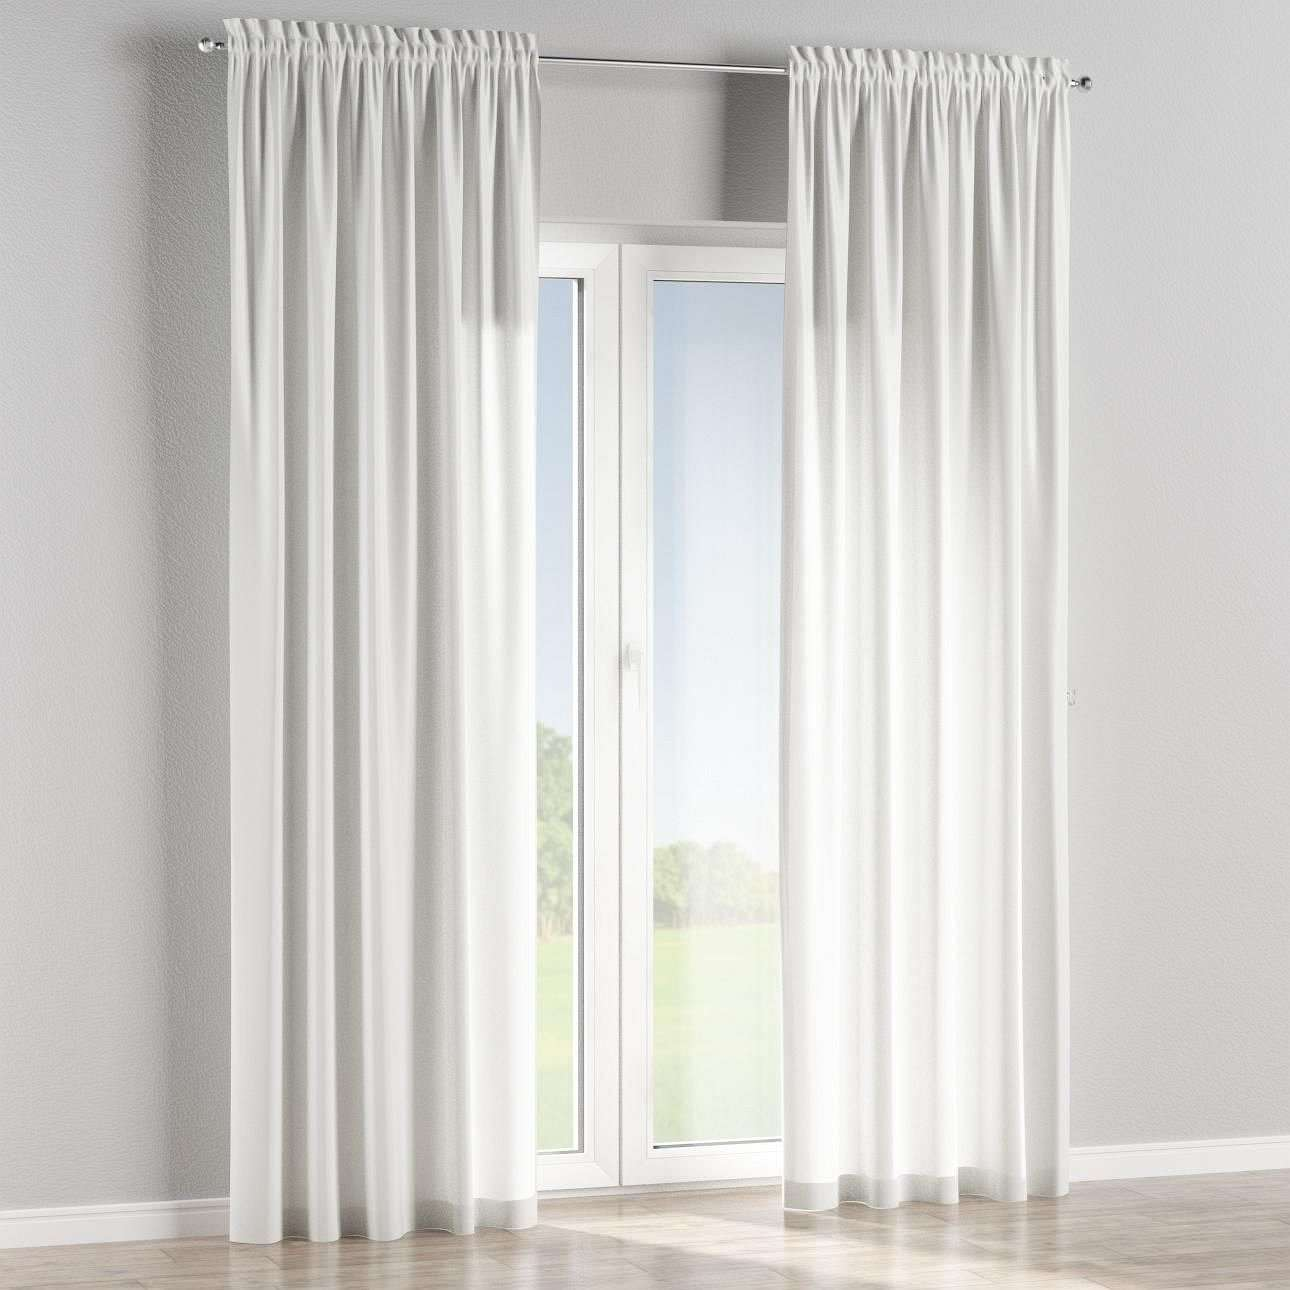 Slot and frill lined curtains in collection Flowers, fabric: 302-01